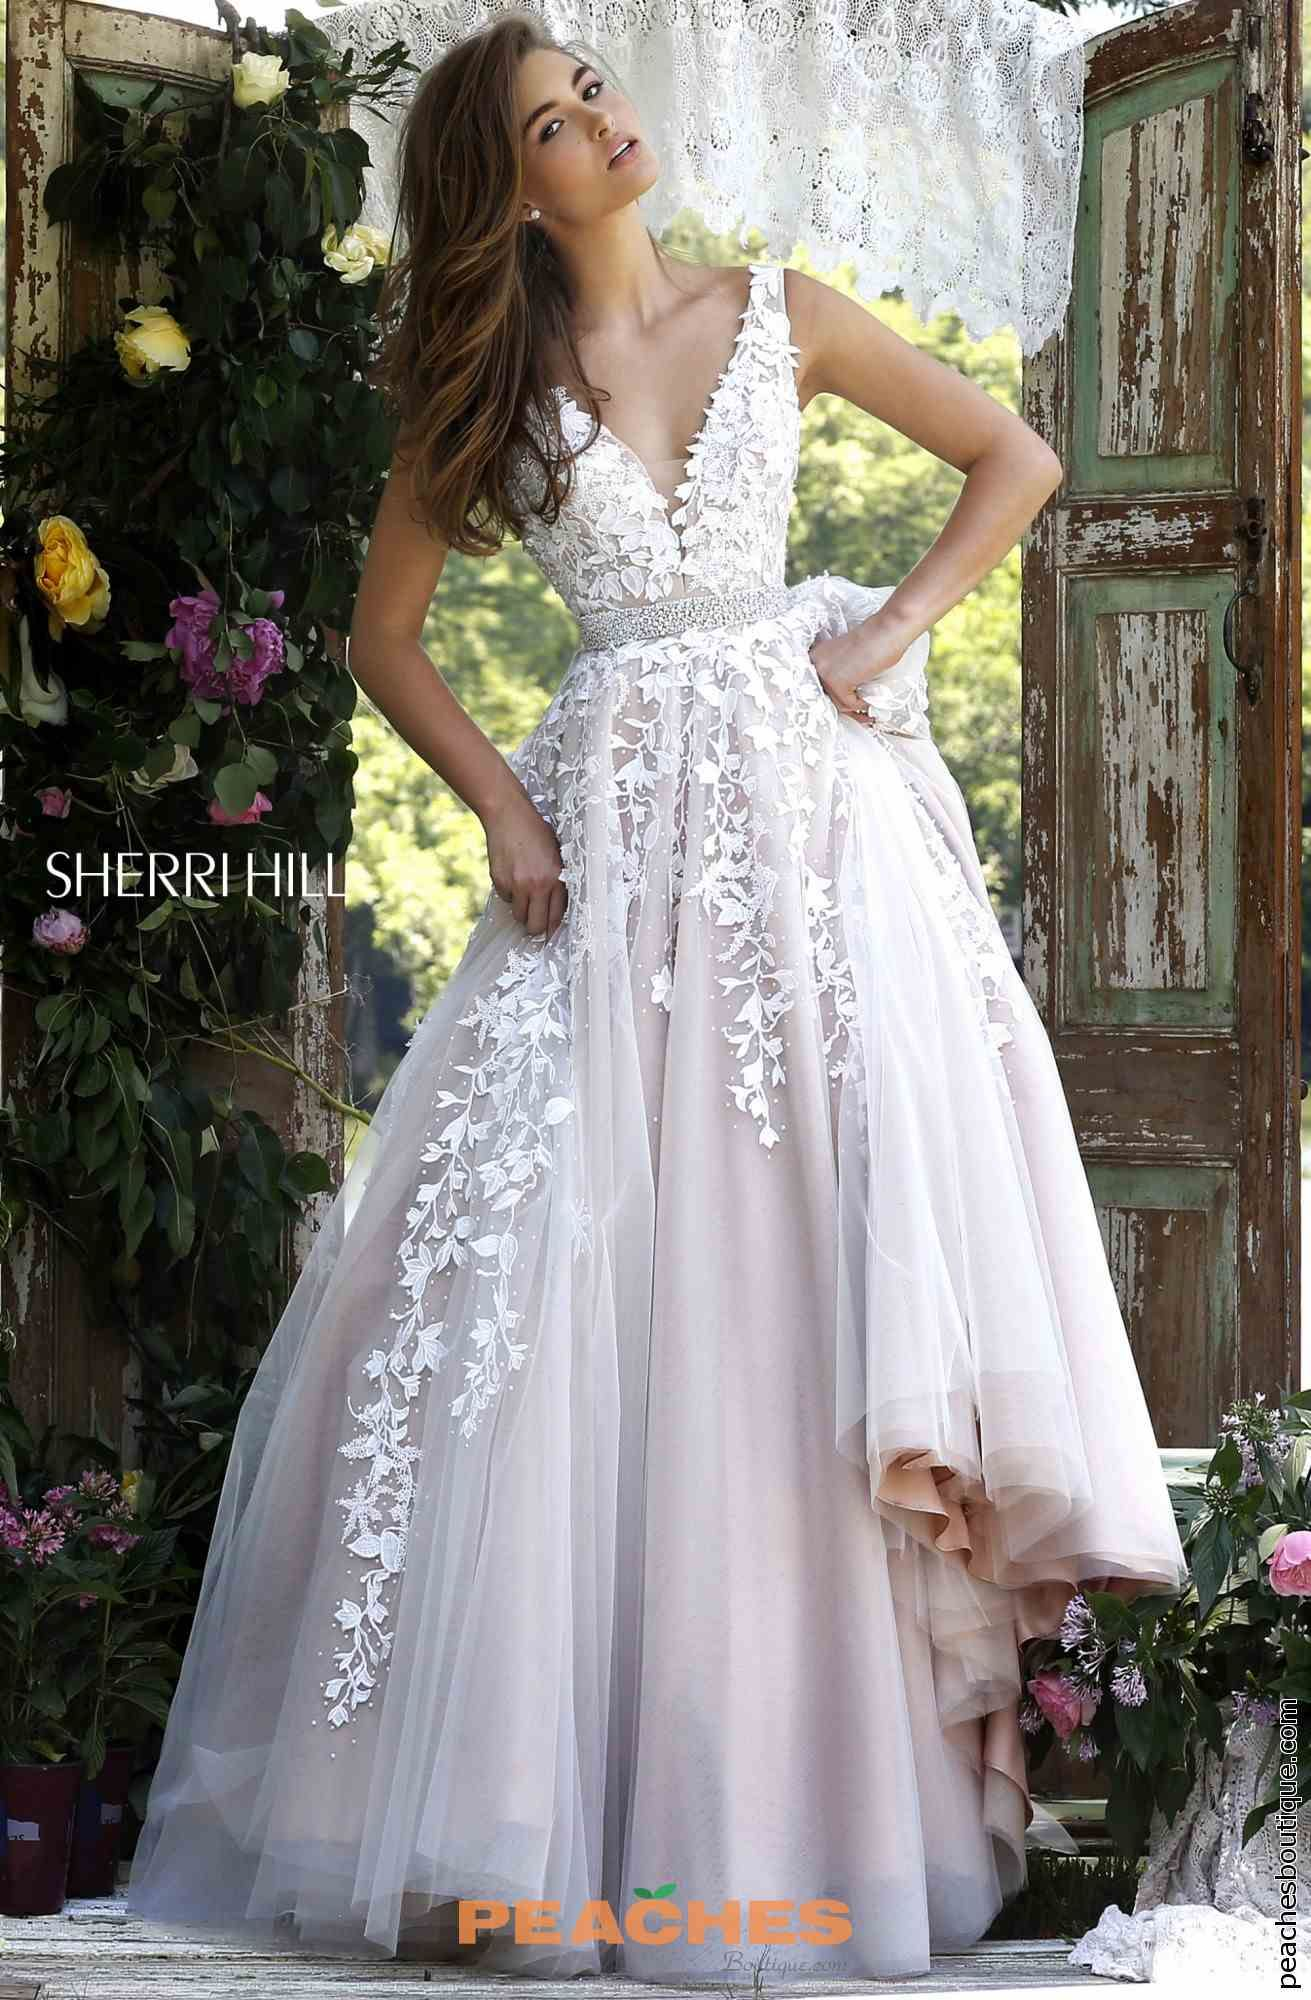 Sherri hill v neckline a line dress noivinhas pinterest